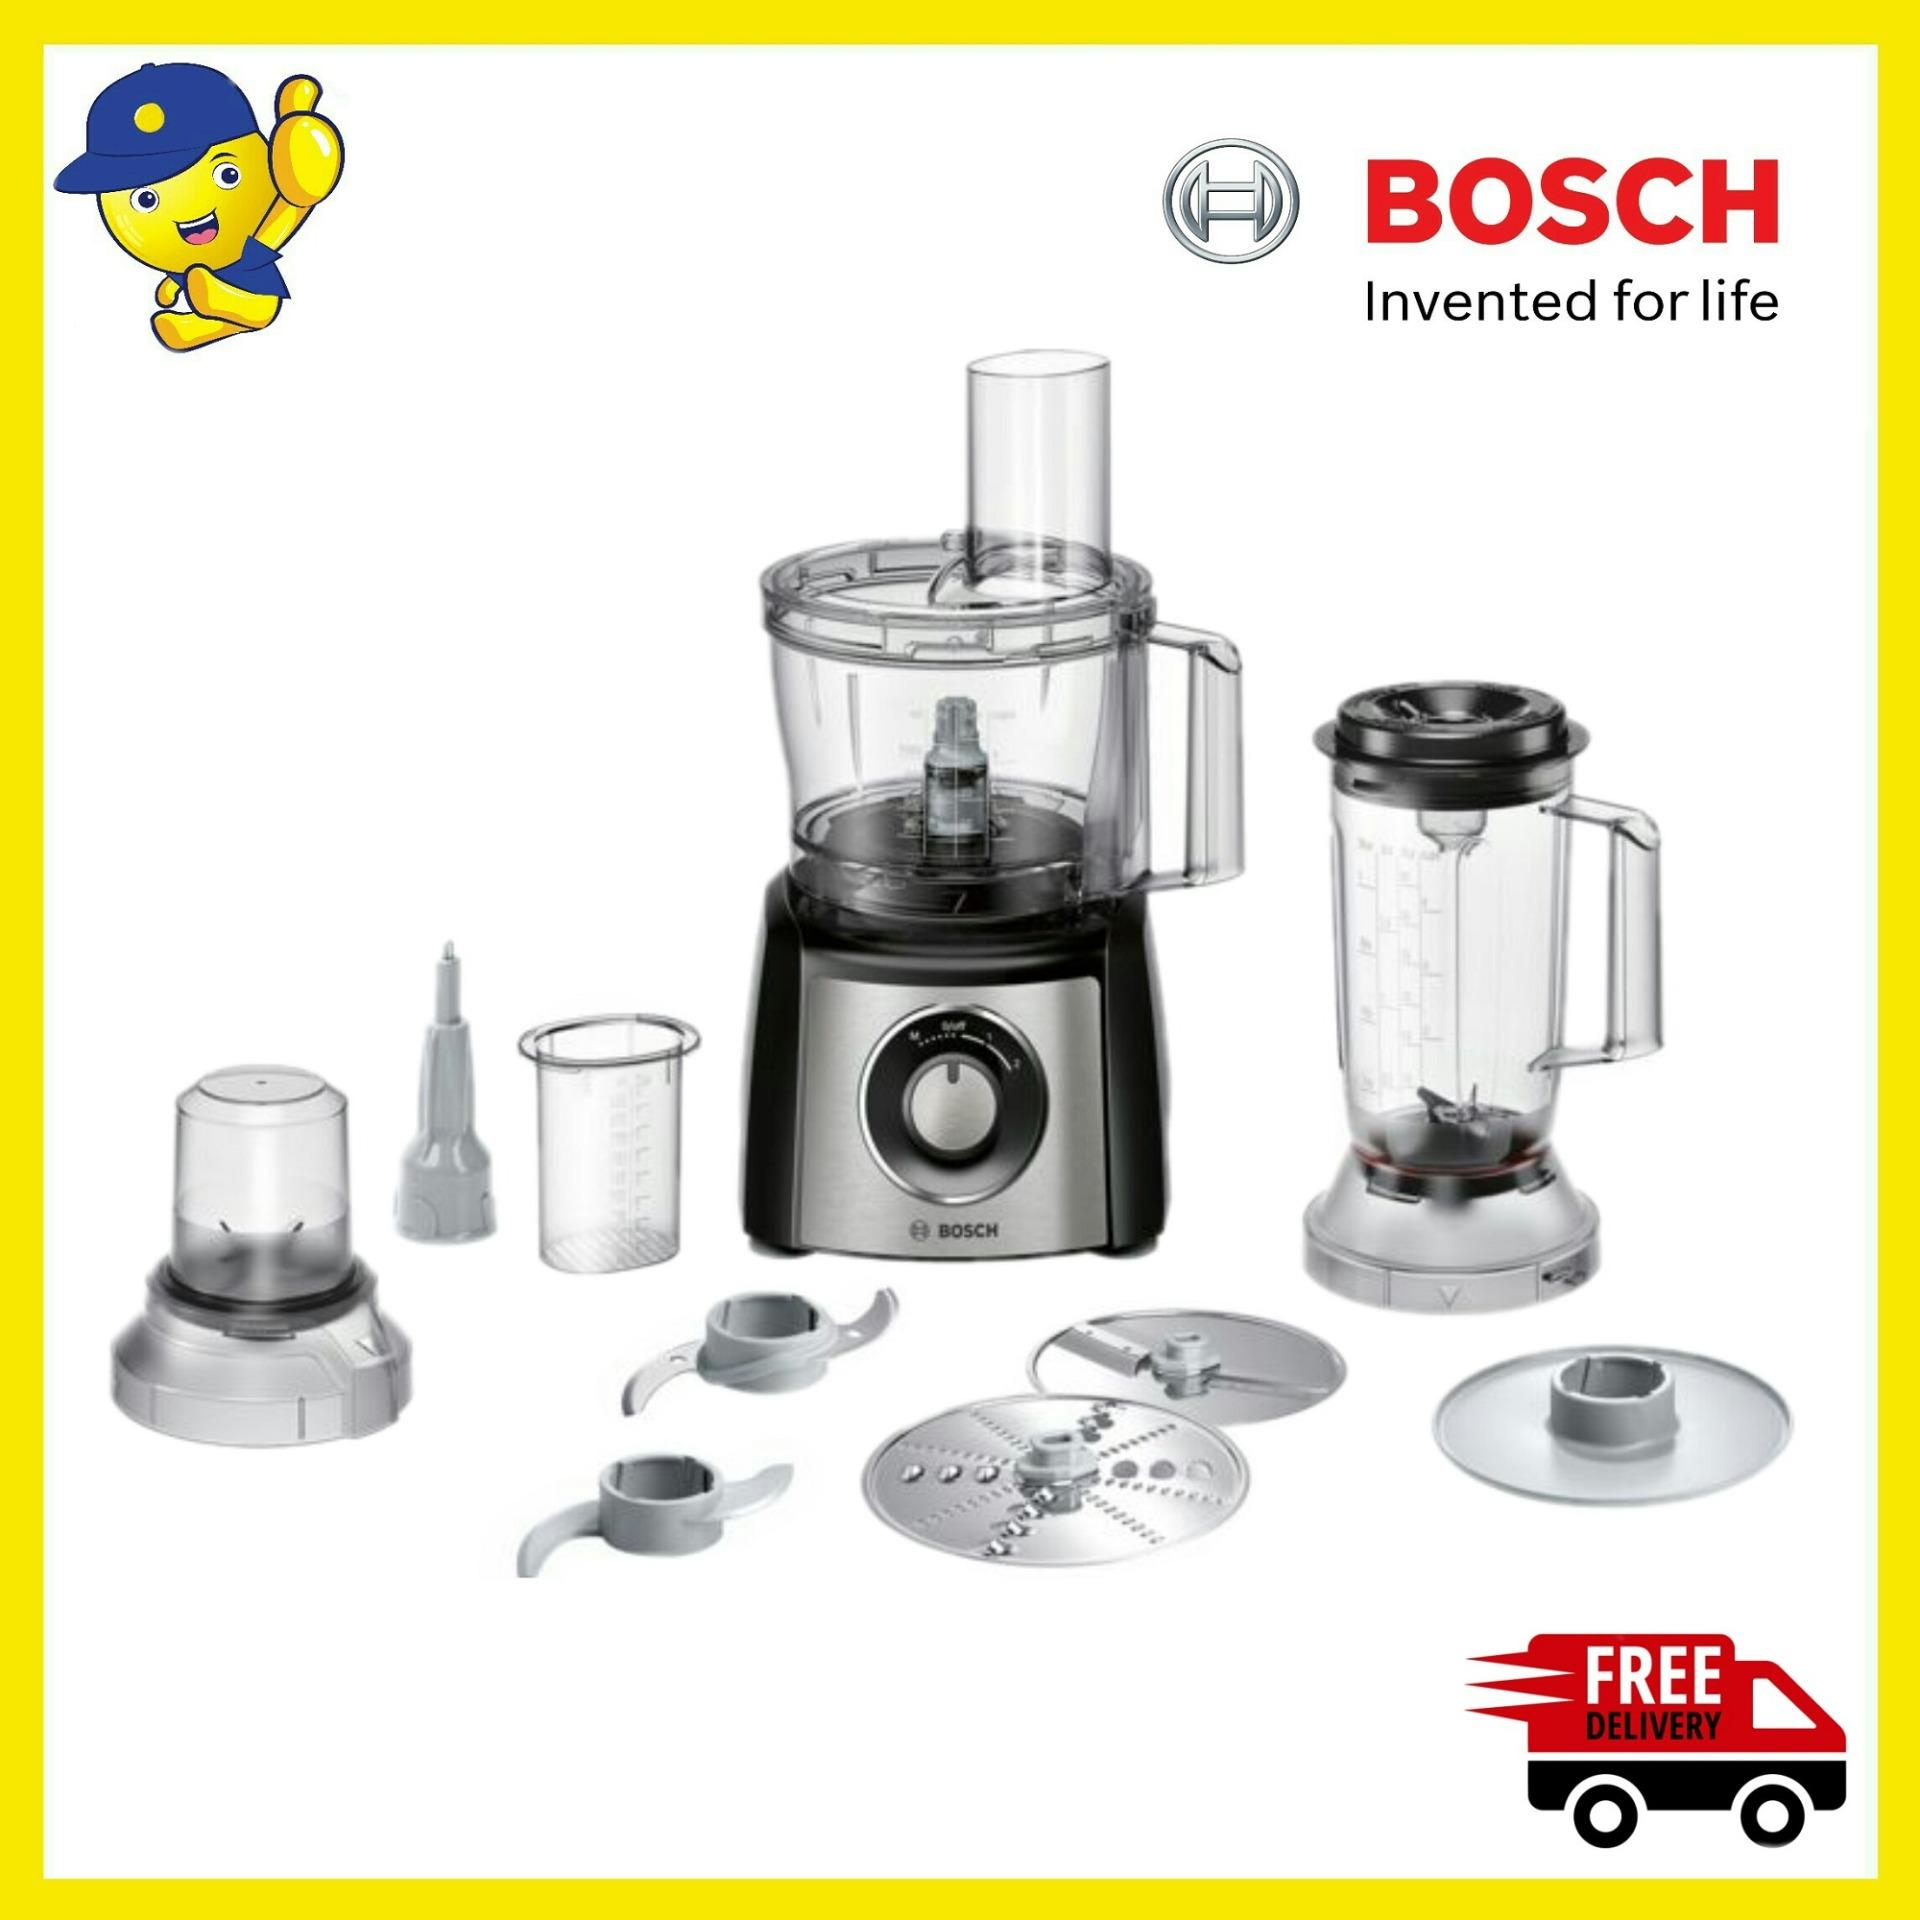 ... Sharp Air Purifier With Humidifying 48m2 Kc A60y W White Khusus. Source · Bosch Blender Mmb33p5b Migty Mixx Silver Free Ongkirjabodetabek Source · Bosch